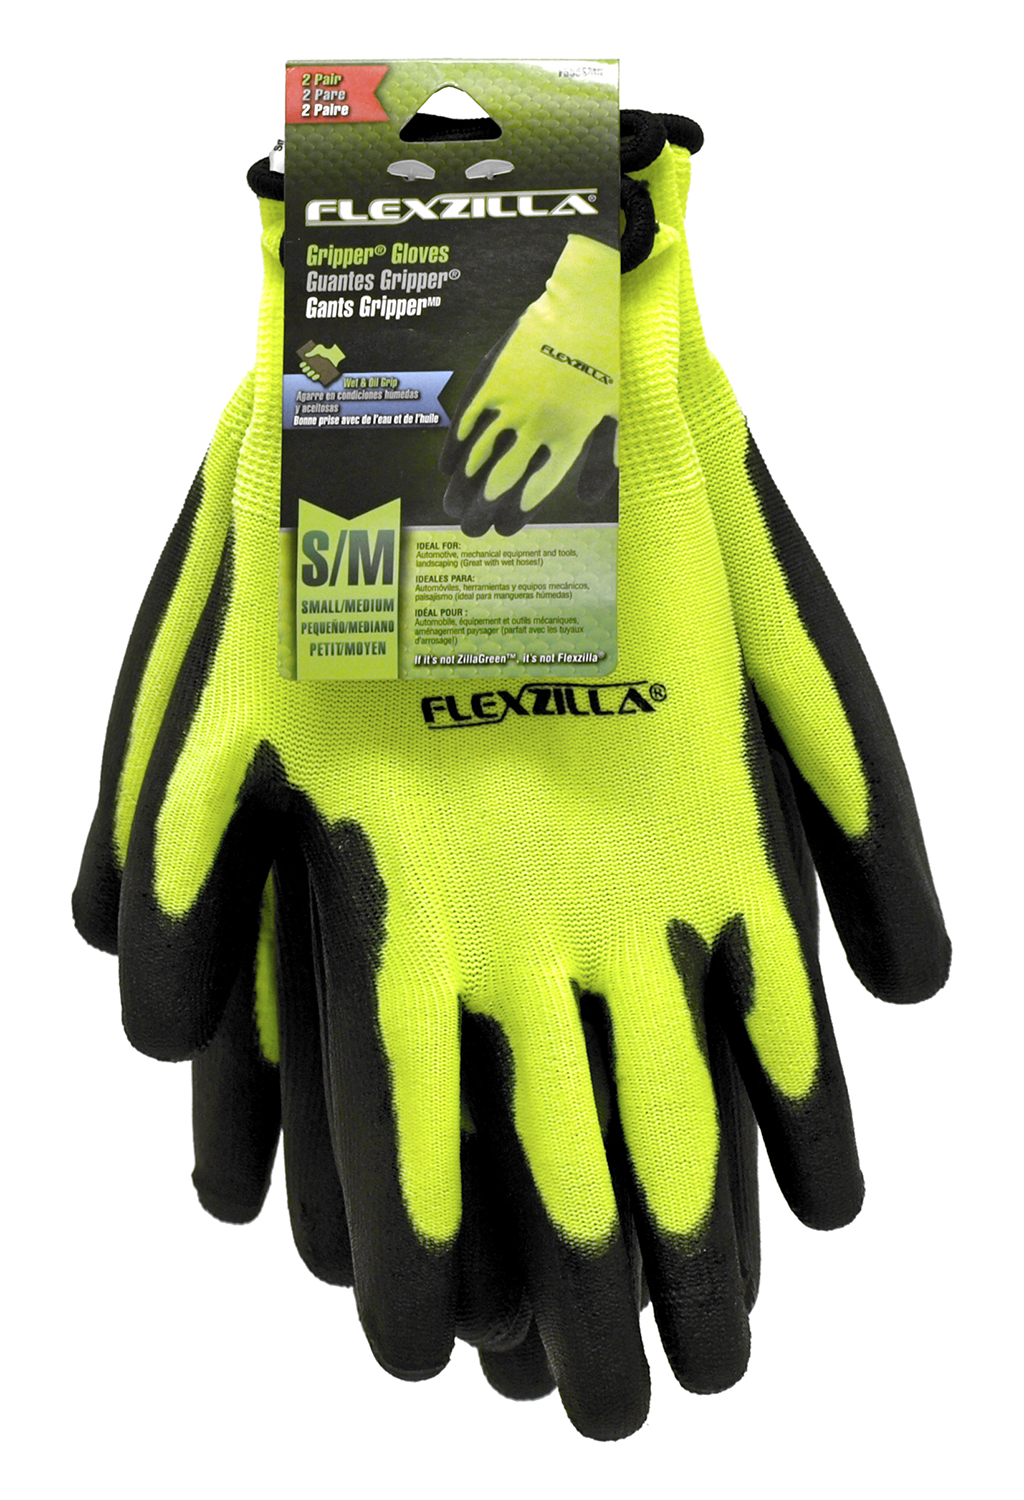 2 - Pair Flexzilla Gripper Gloves - Small / Medium